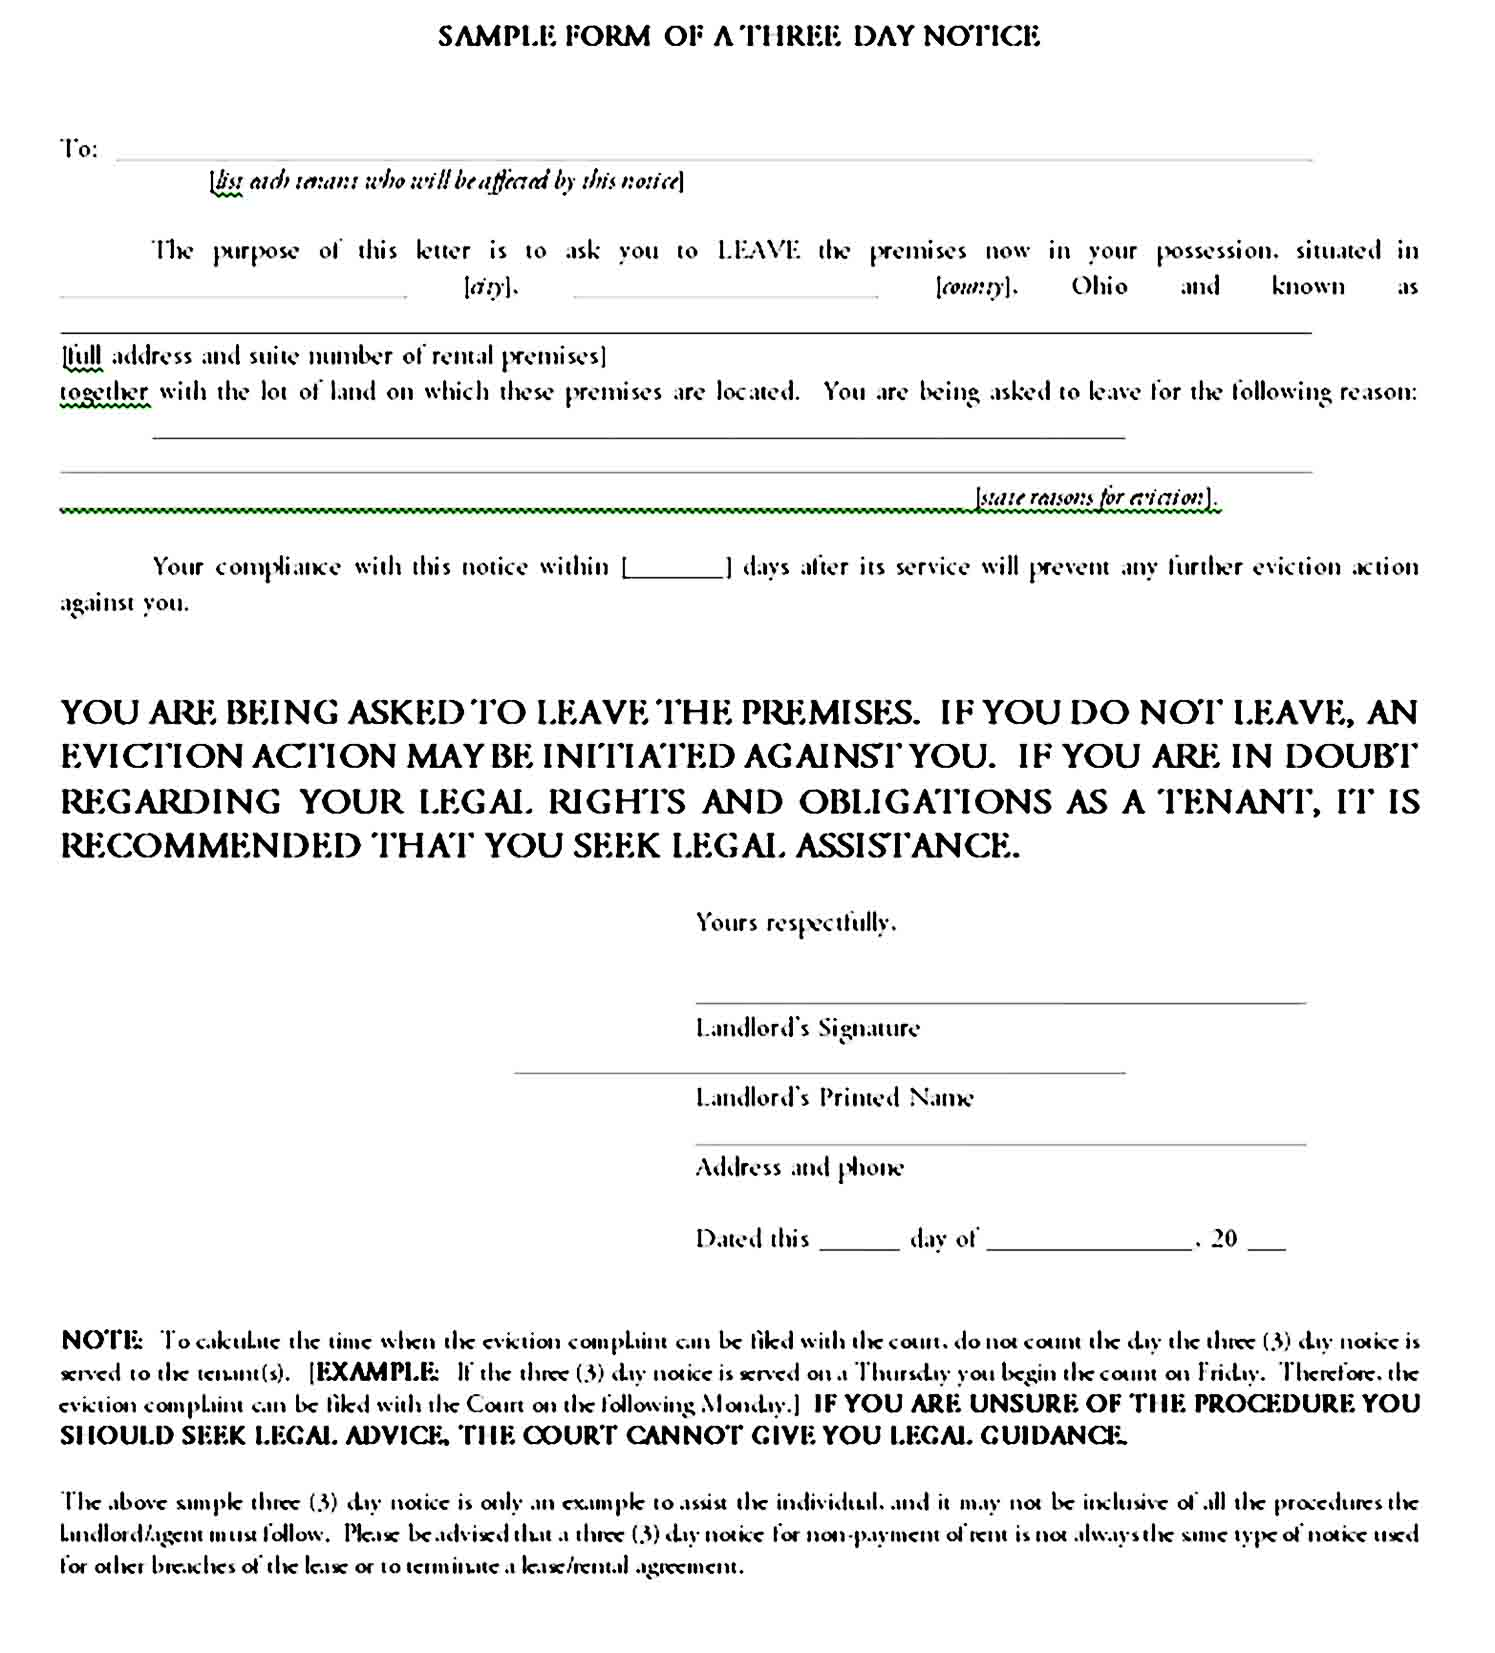 Sample form of a three day notice